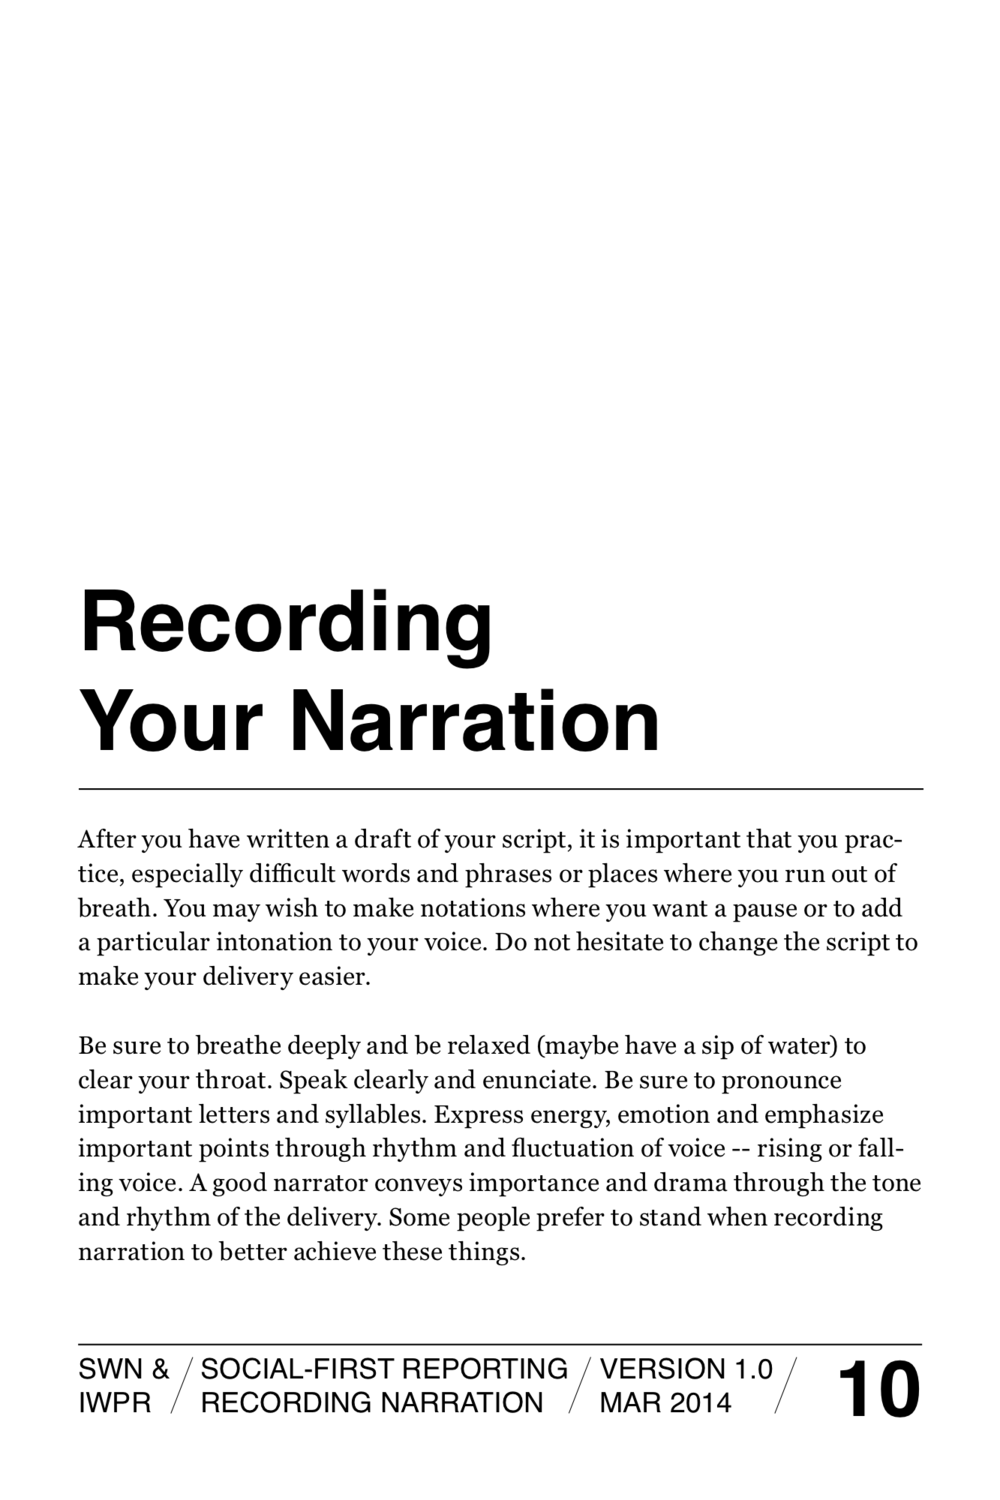 recordnarration 10.png